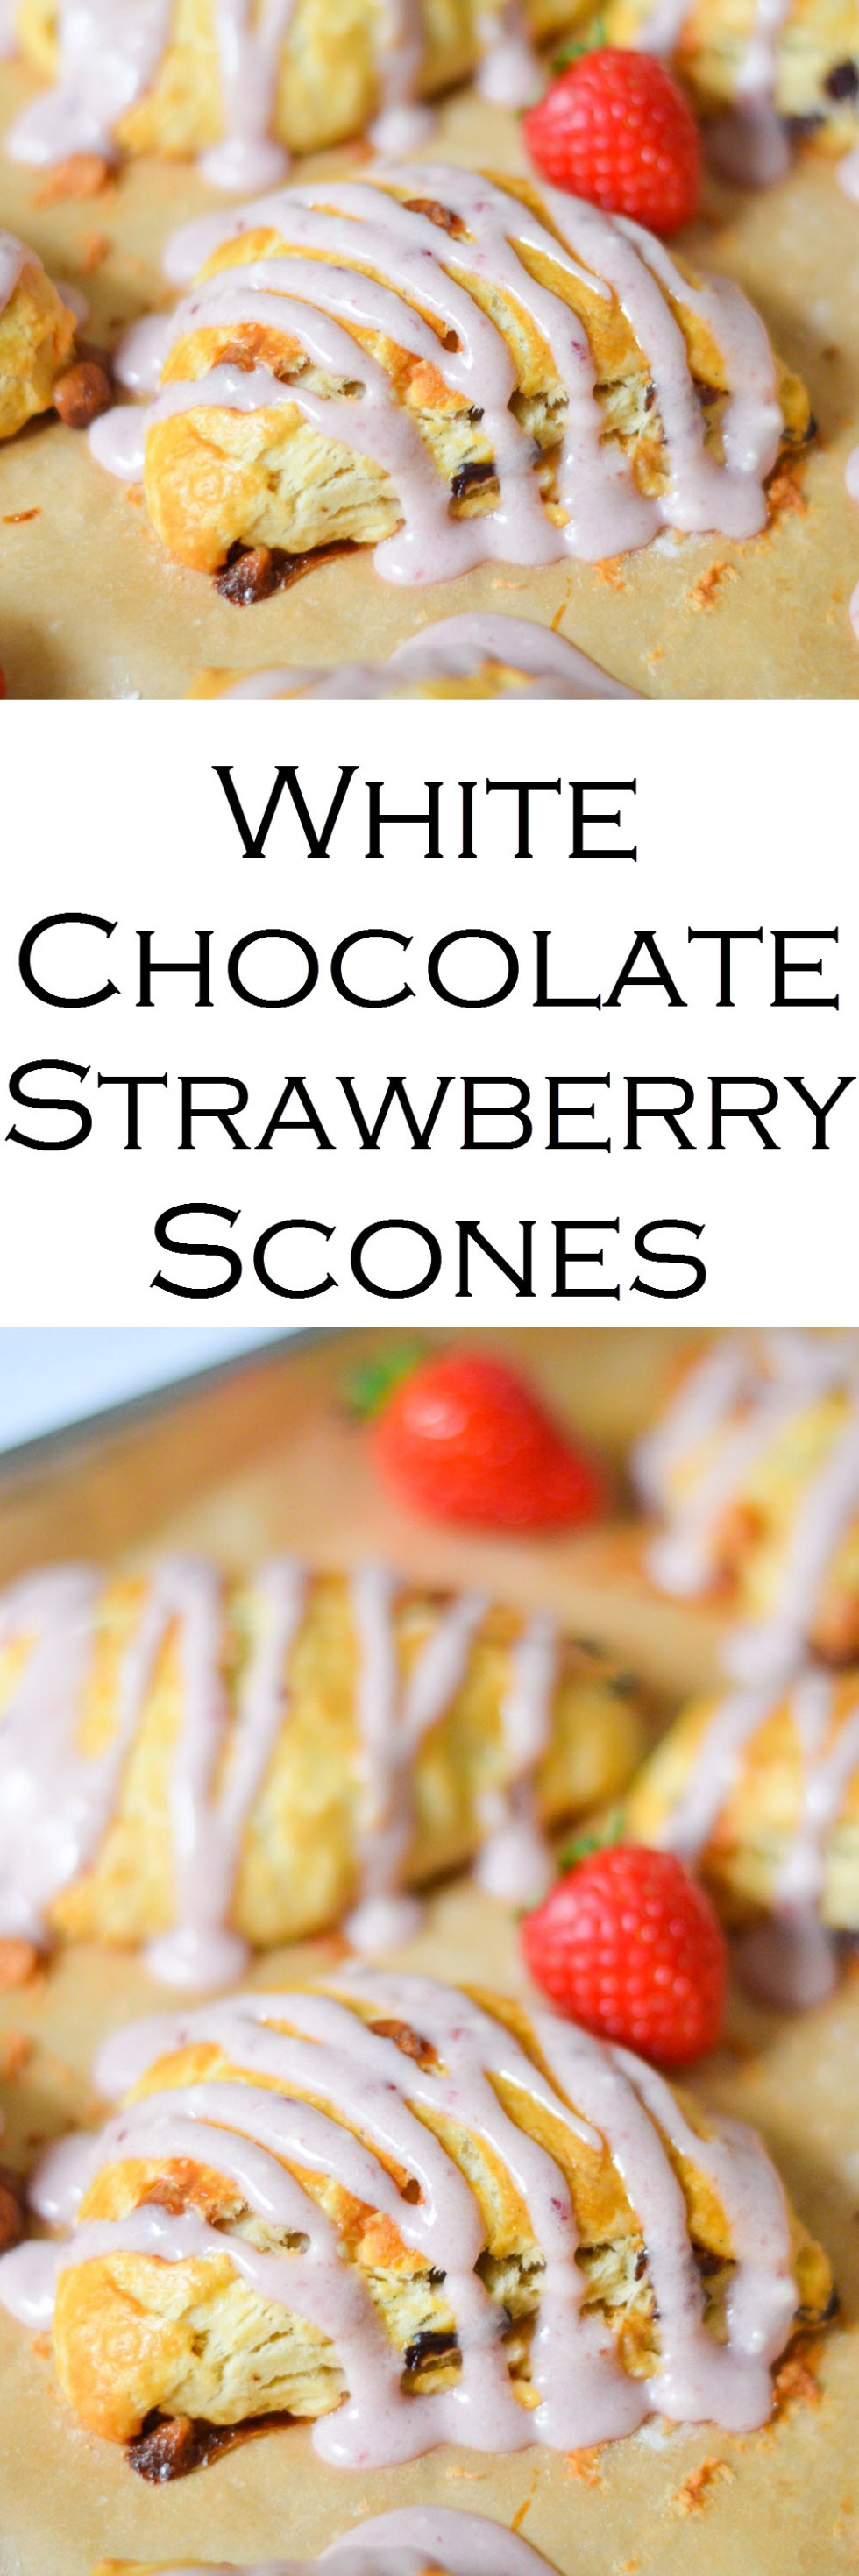 White Chocolate Strawberry Scones w. Strawberry Icing Drizzle. Fun summer breakfast or dessert. Dried strawberry recipe. #breakfast #breads #baking #foodblog #strawberries #lmrecipes #foodblogger #brunch